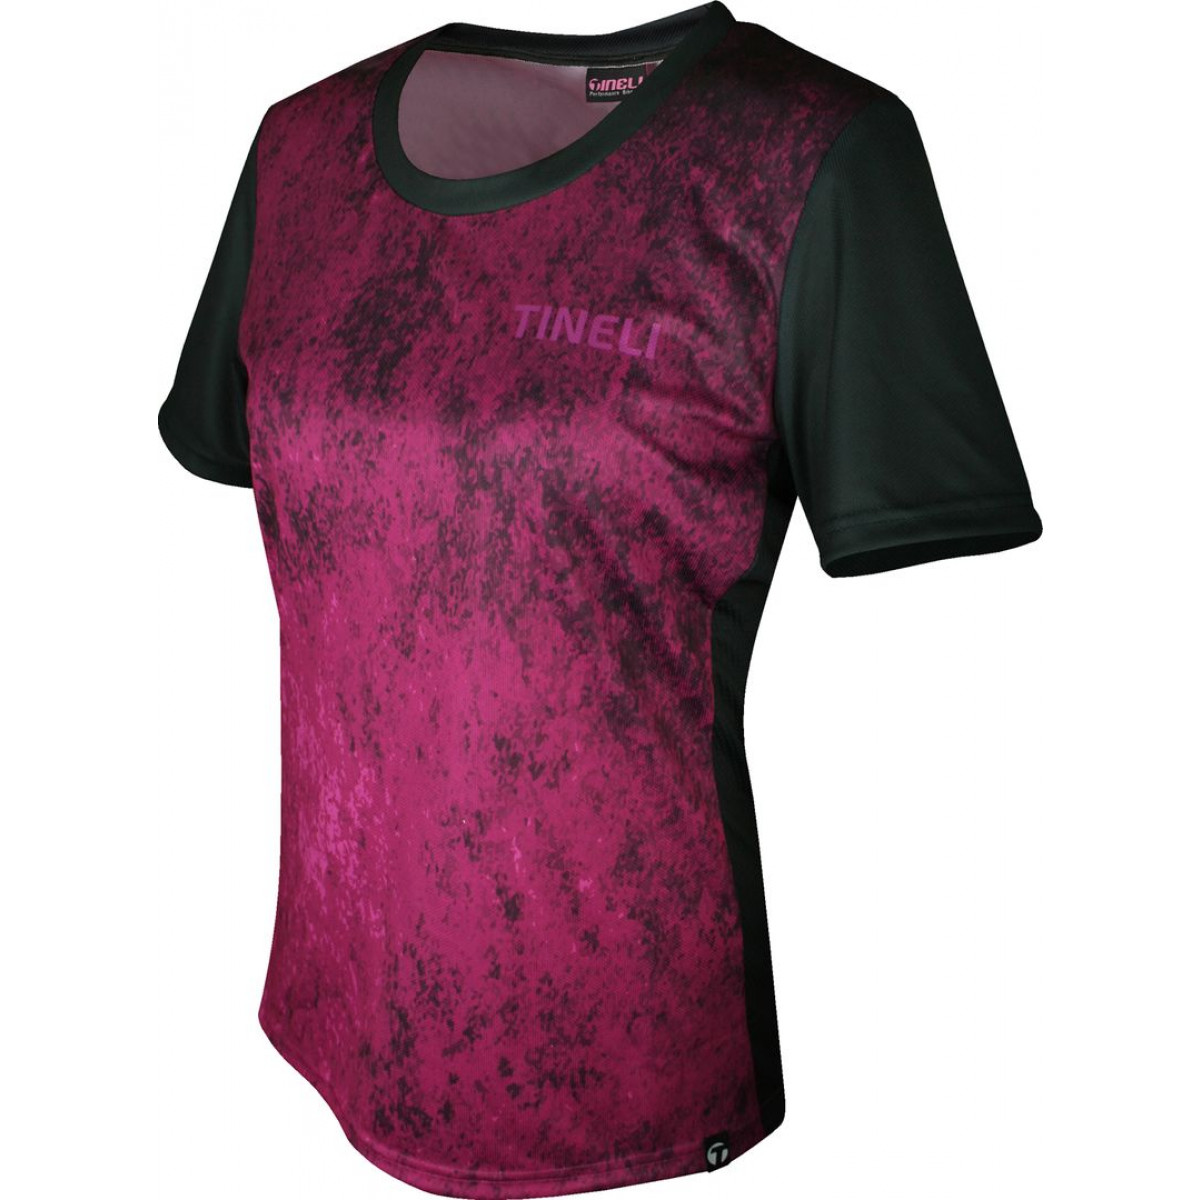 393 eroded trail jersey Women's Short Sleeve Trail Jersey